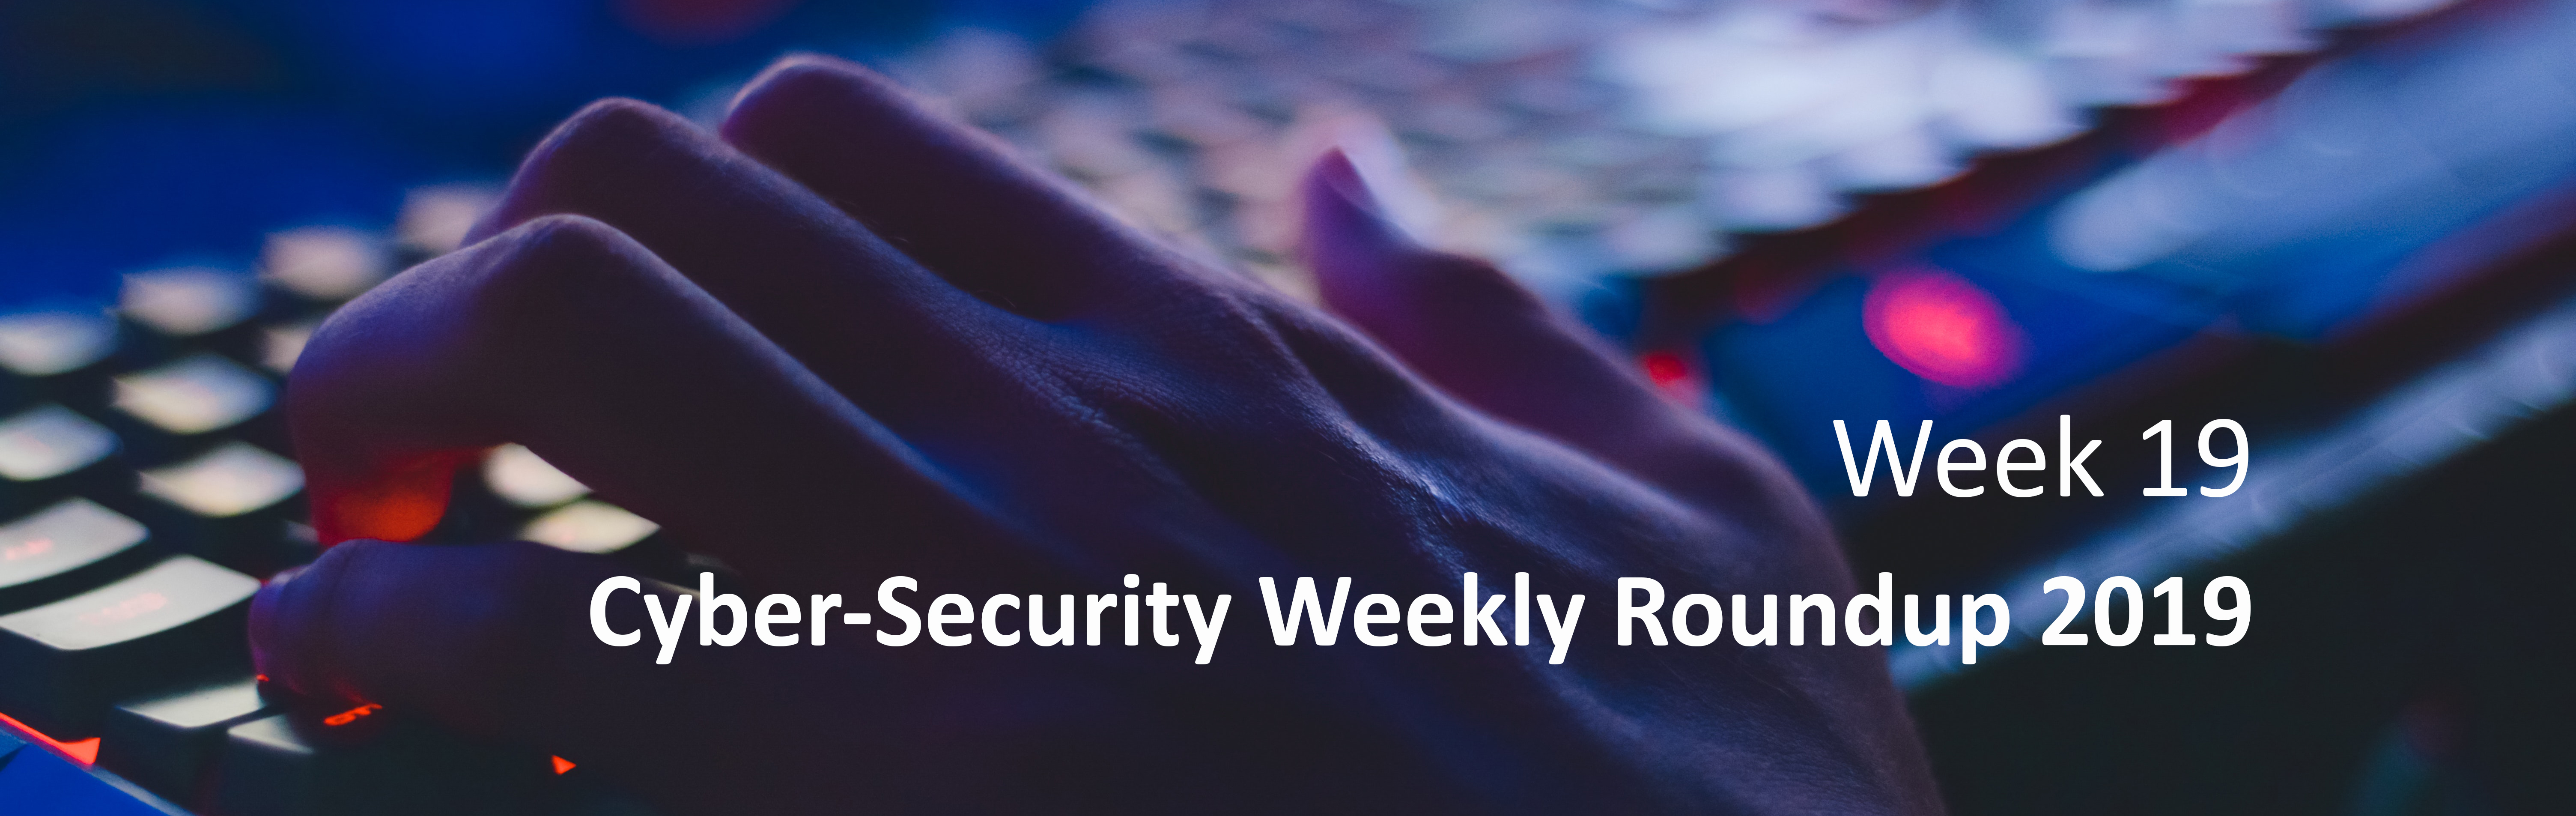 Cyber Attack Weekly Round Up wk 19